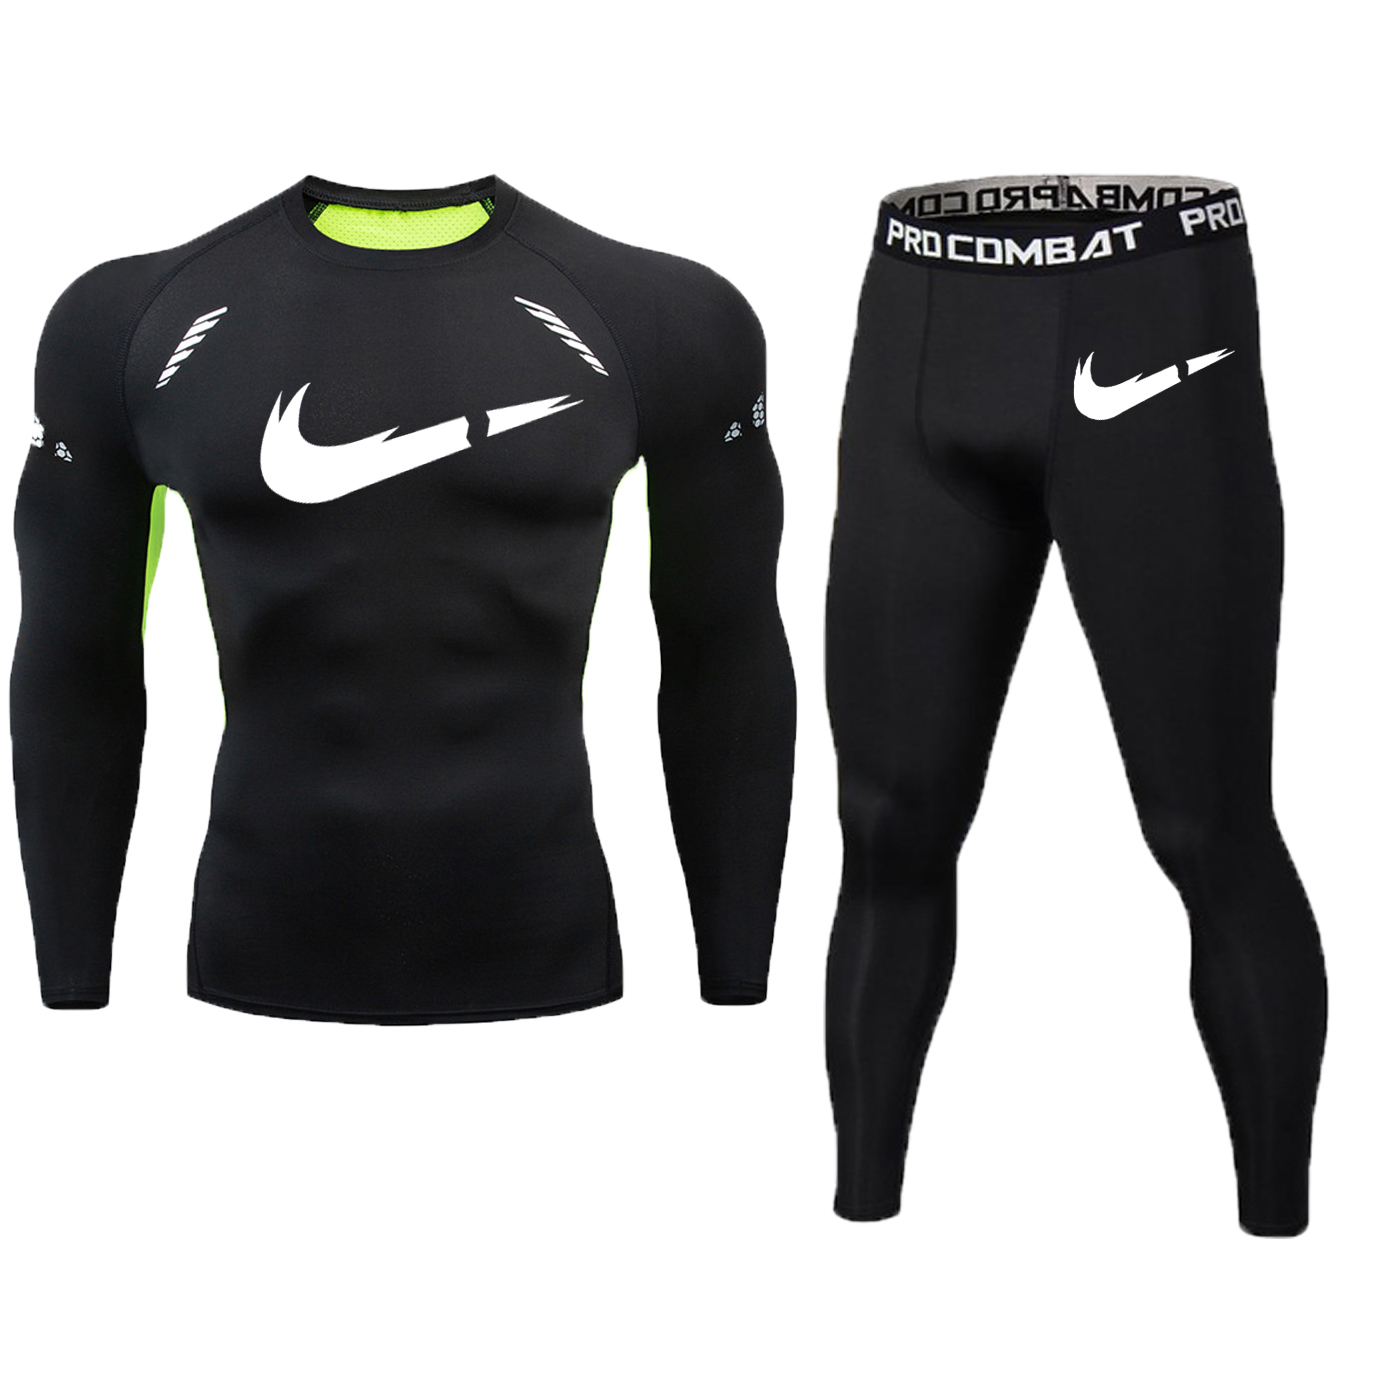 Image 3 - New Fitness Men's Set Pure Black Compression Top + Leggings Underwear Crossfit Long Sleeve + Short Sleeve T Shirt Apparel Set-in Men's Sets from Men's Clothing